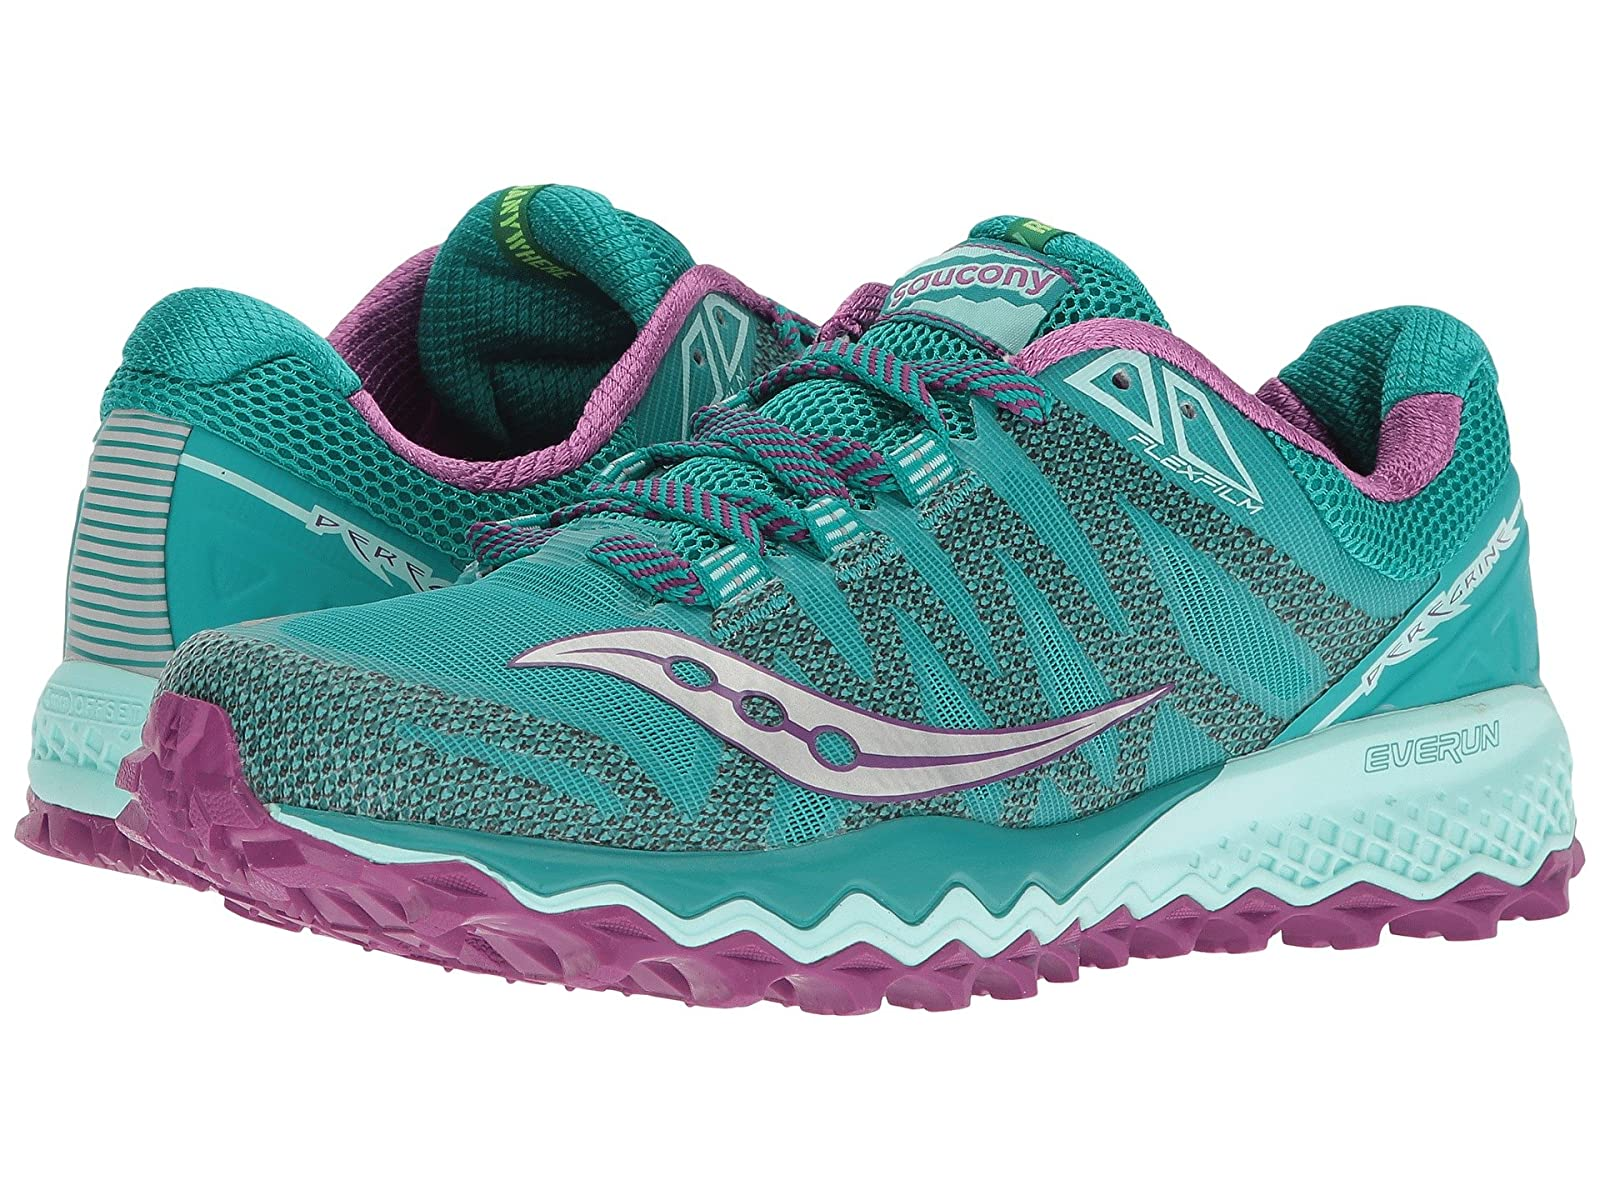 Saucony Peregrine 7Cheap and distinctive eye-catching shoes